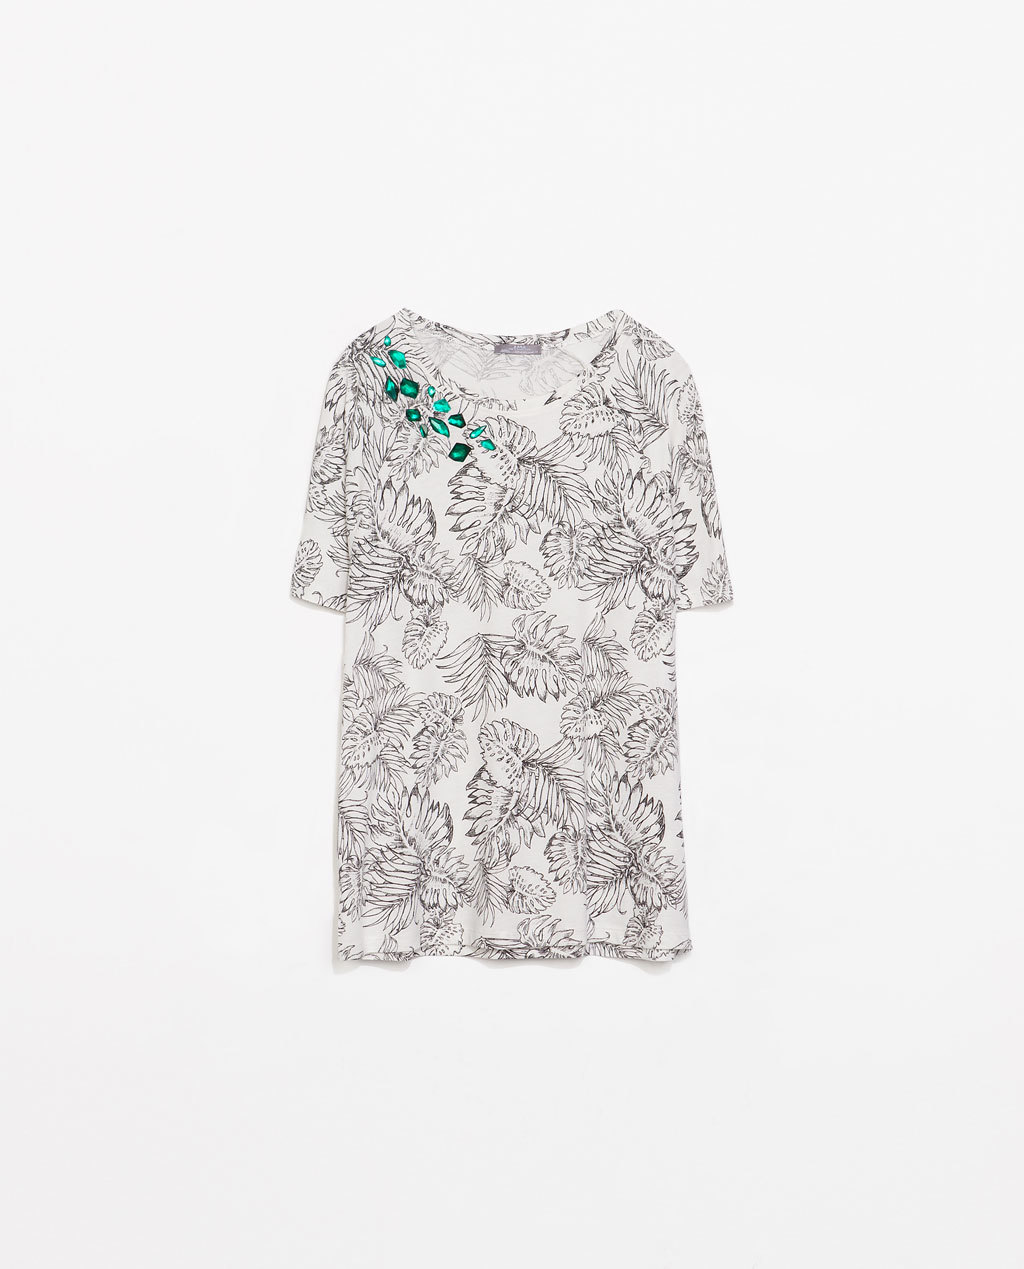 Printed T Shirt With Appliques - neckline: round neck; style: t-shirt; secondary colour: white; predominant colour: black; occasions: casual; length: standard; fibres: cotton - mix; fit: loose; sleeve length: short sleeve; sleeve style: standard; pattern type: fabric; pattern: florals; texture group: jersey - stretchy/drapey; embellishment: jewels/stone; season: s/s 2014; pattern size: big & busy (top); wardrobe: highlight; embellishment location: neck